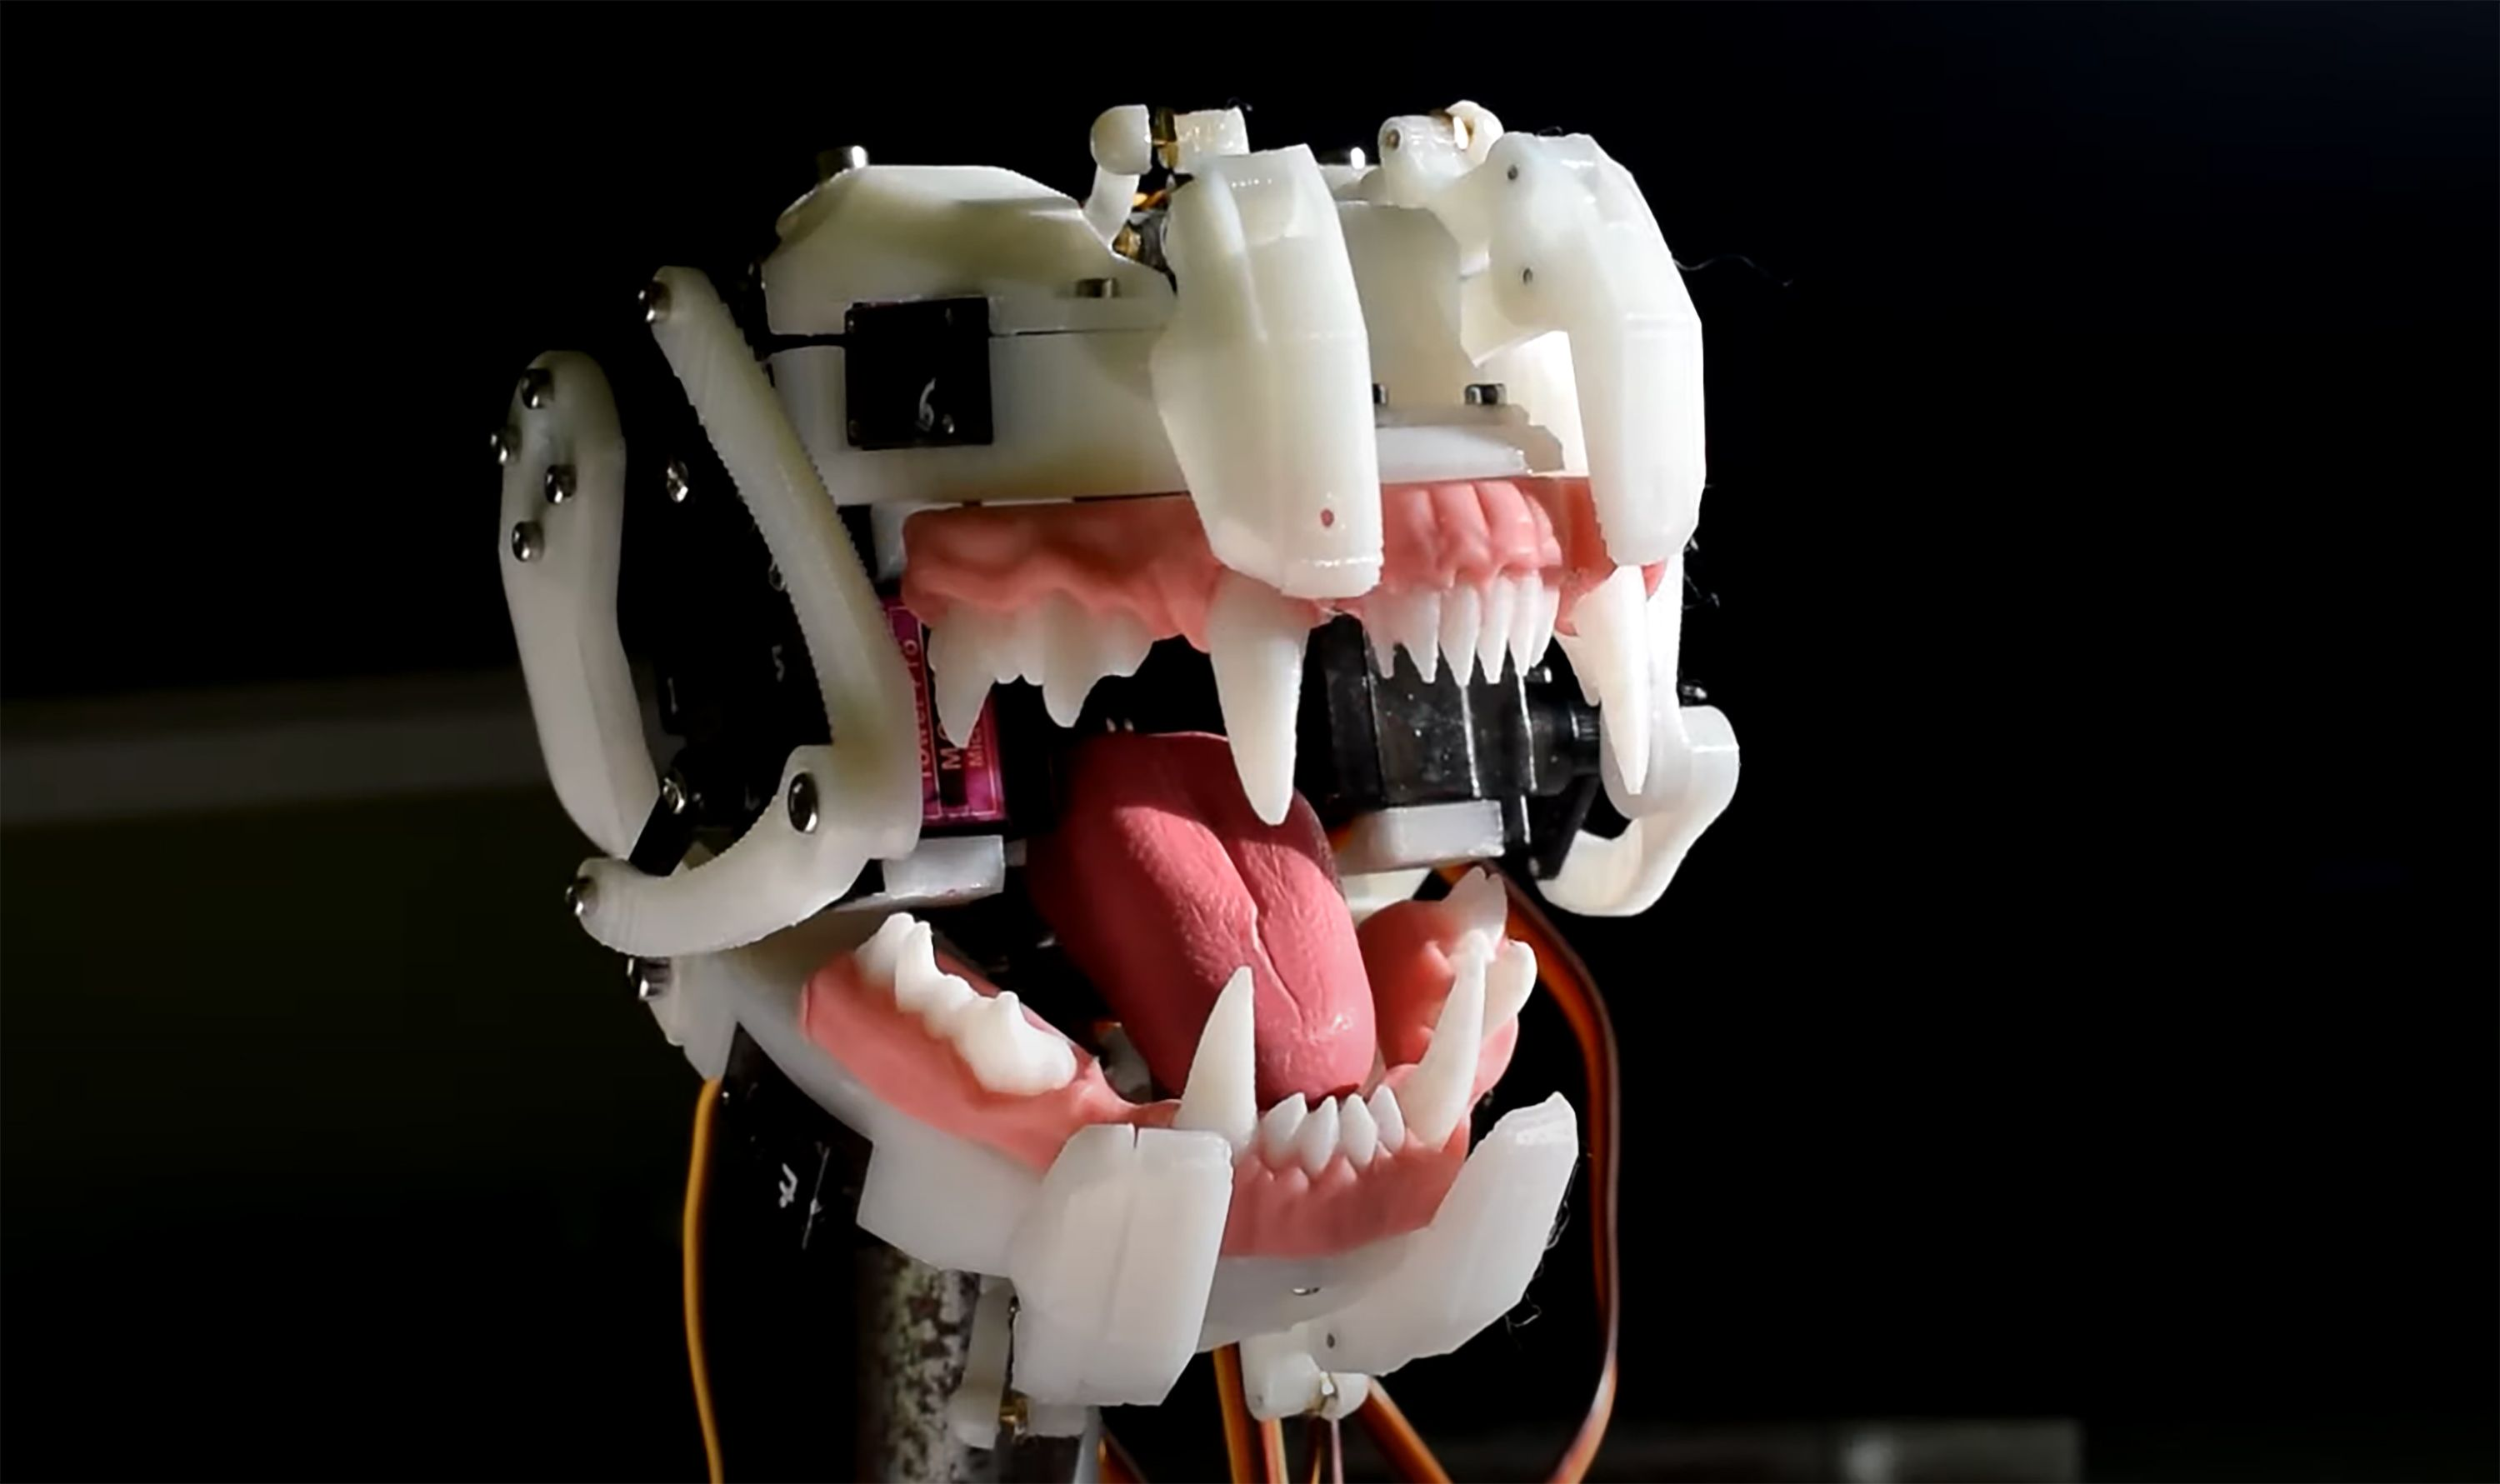 Actuated Jaw by Will Cogley